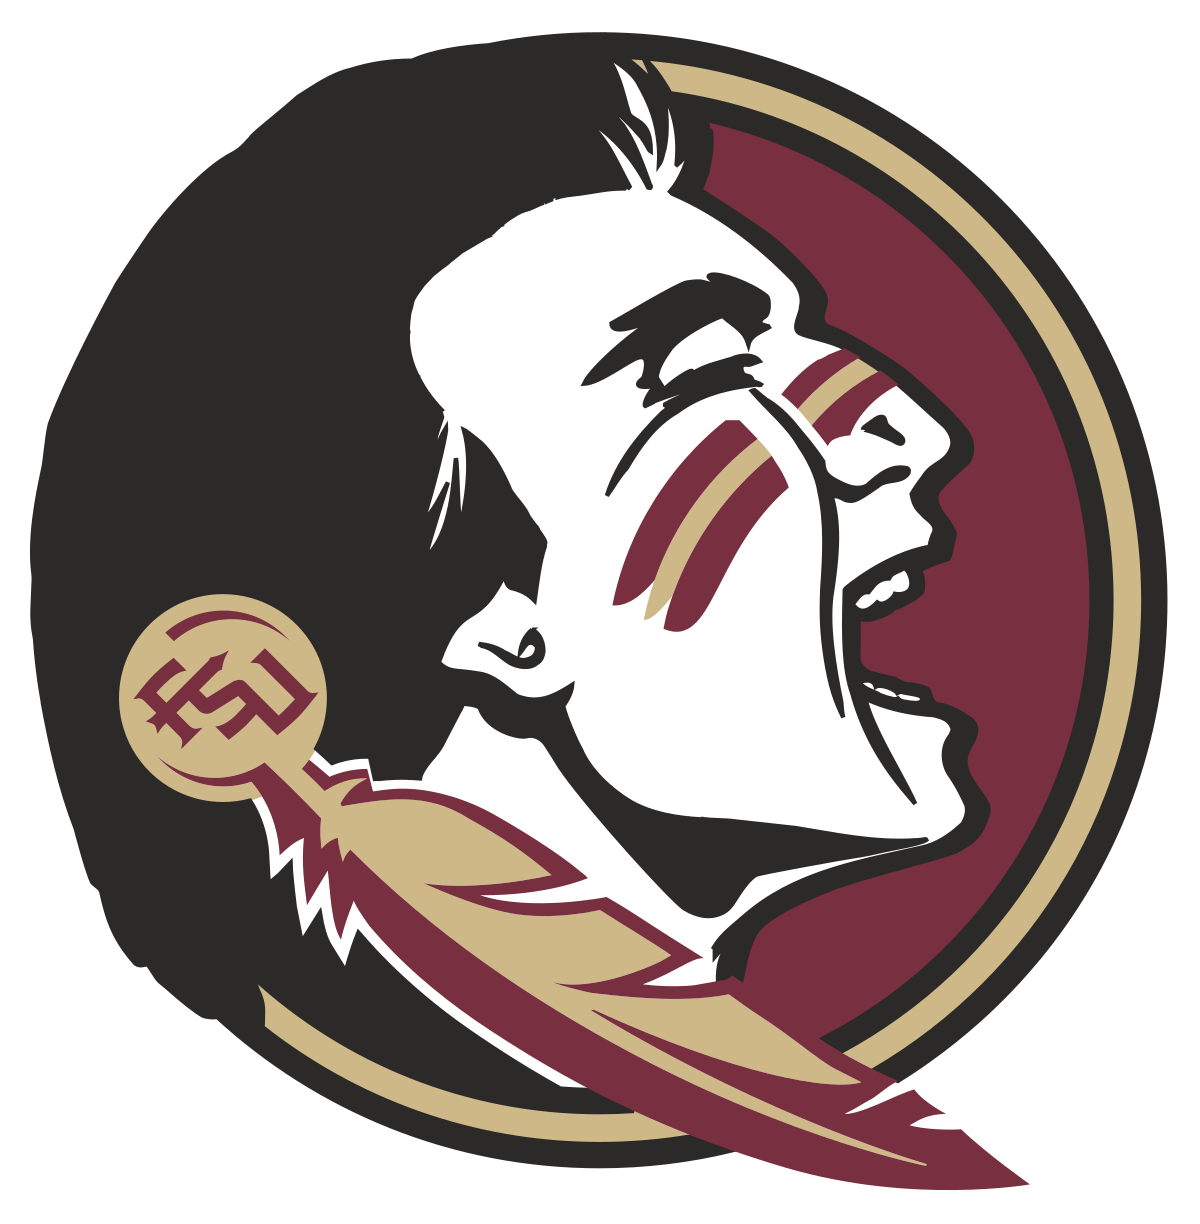 College football clipart royalty free Florida State University Mascot Clipart & Florida State University ... royalty free